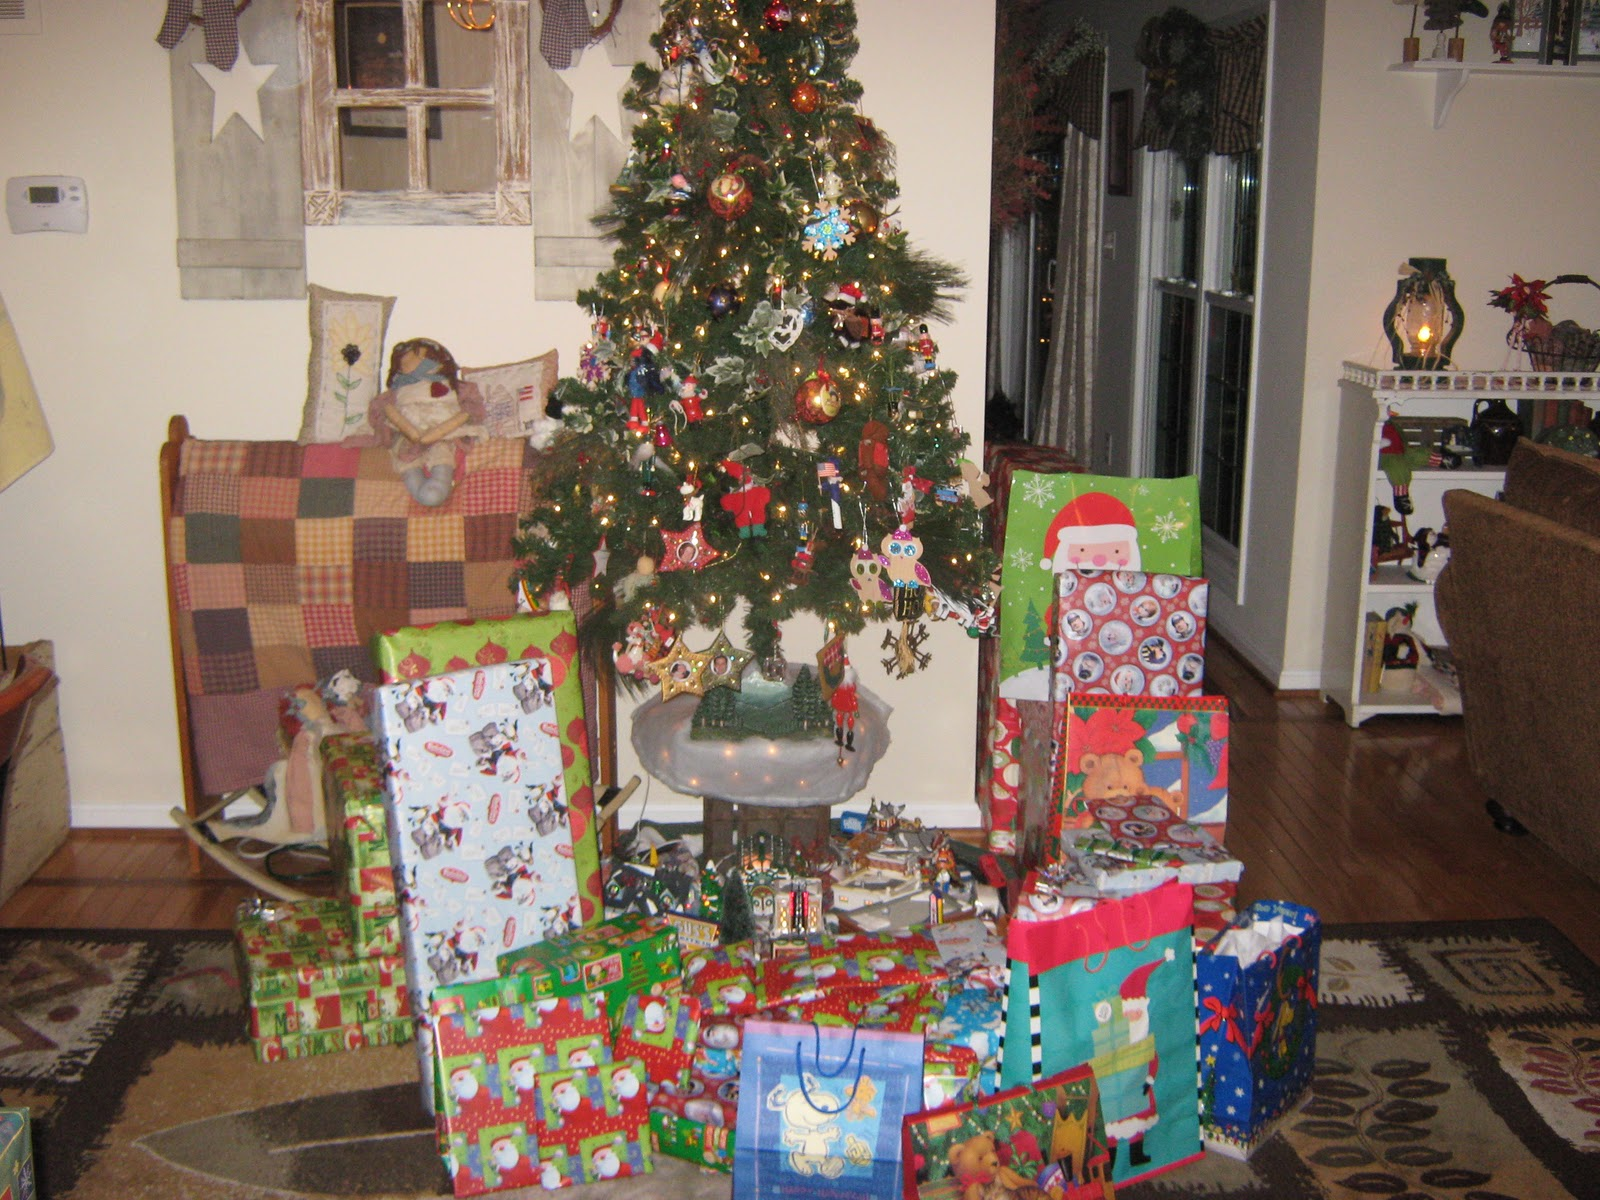 Fake-It Frugal: 10 Gift Genres Under $2.00 - Fill Up That Space ...